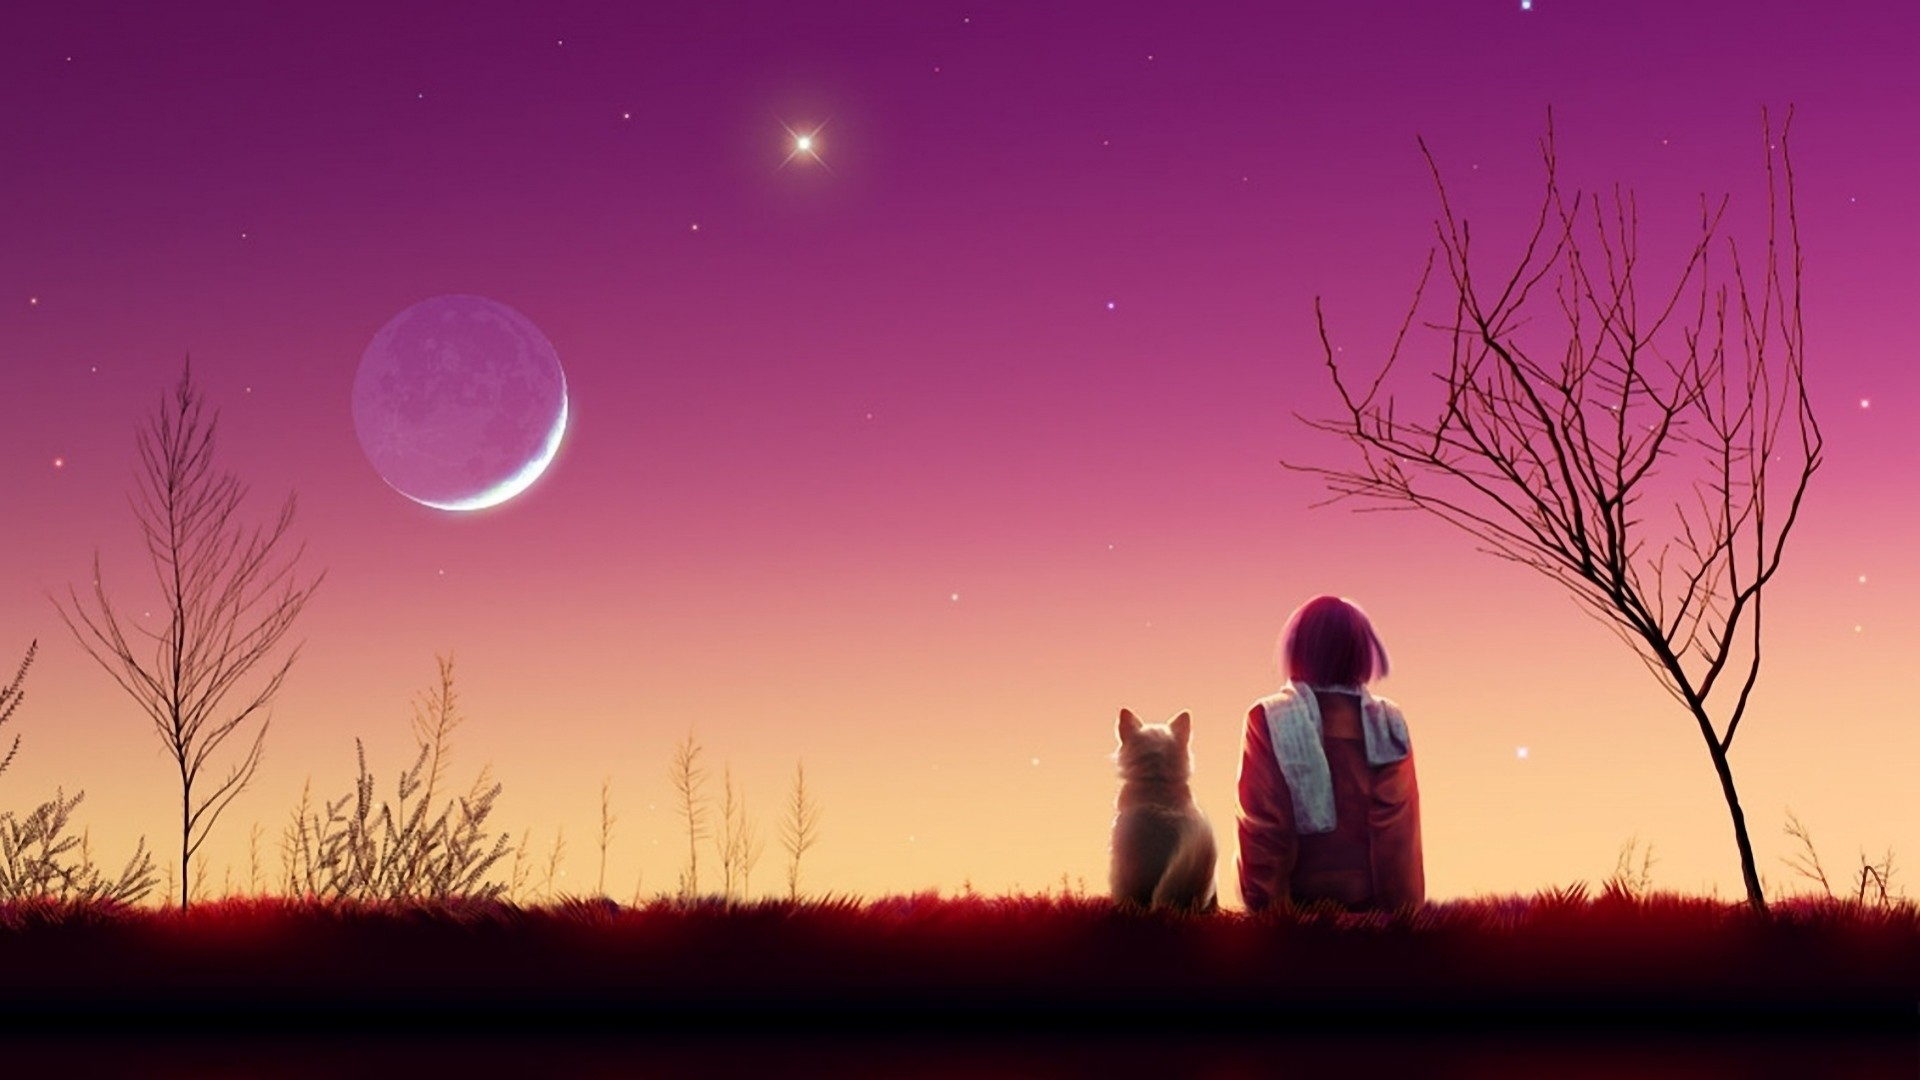 Res: 1920x1080, Download Anime HD Wallpapers Background Image kagaya moon anime girl cat  sunset nature 99554